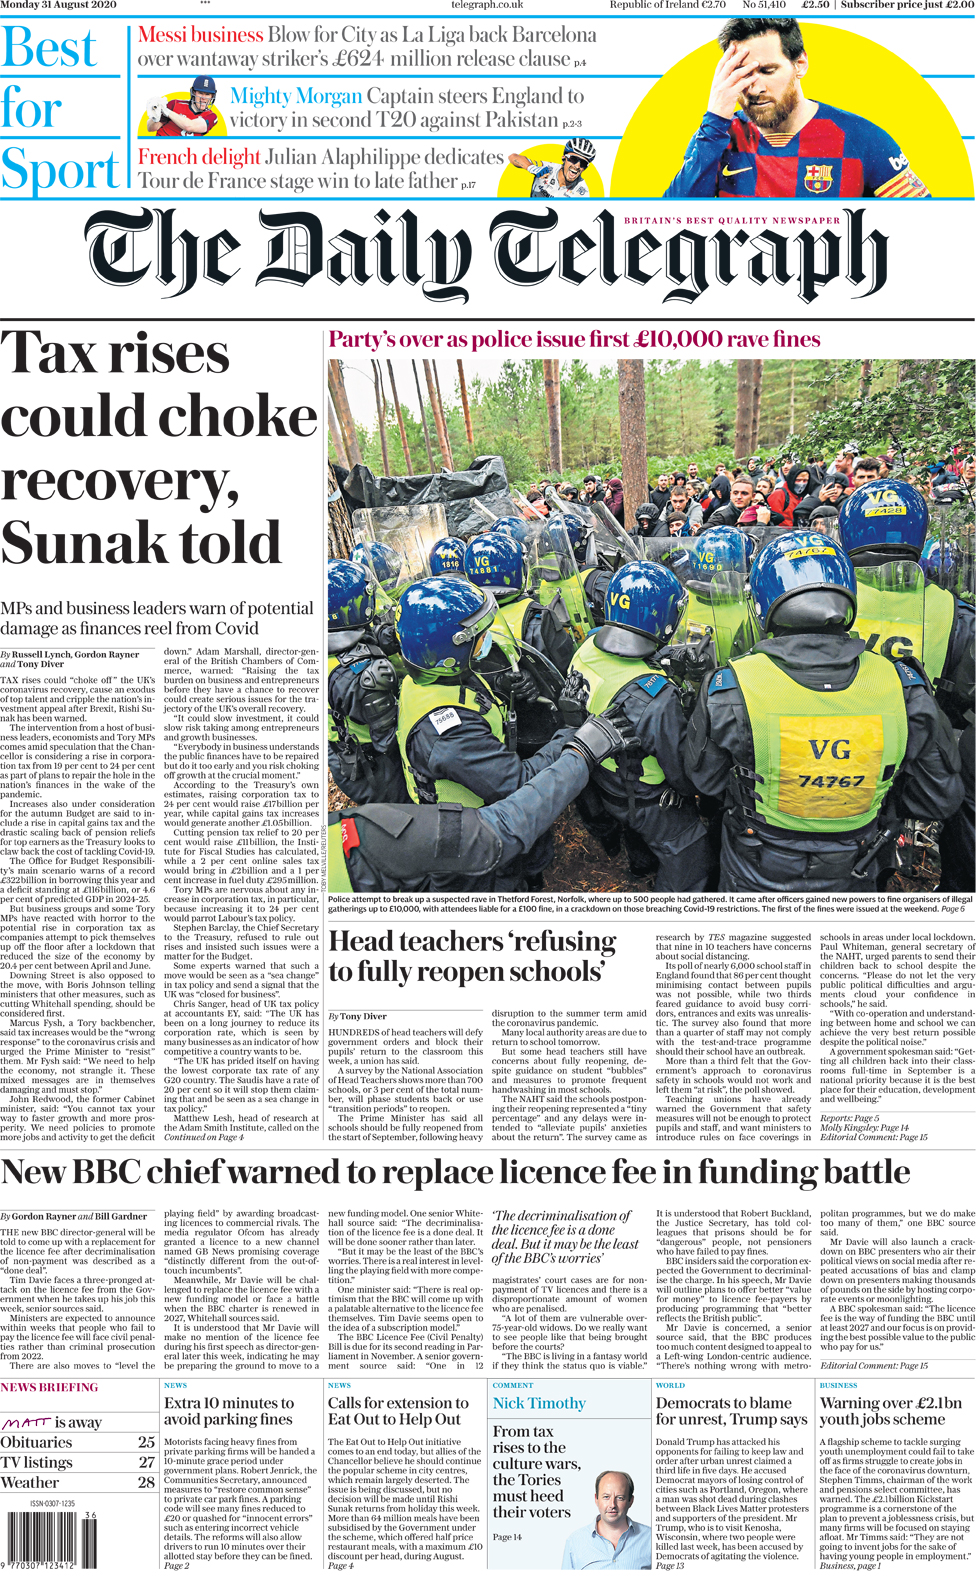 The Daily Telegraph front page 31 August 2020